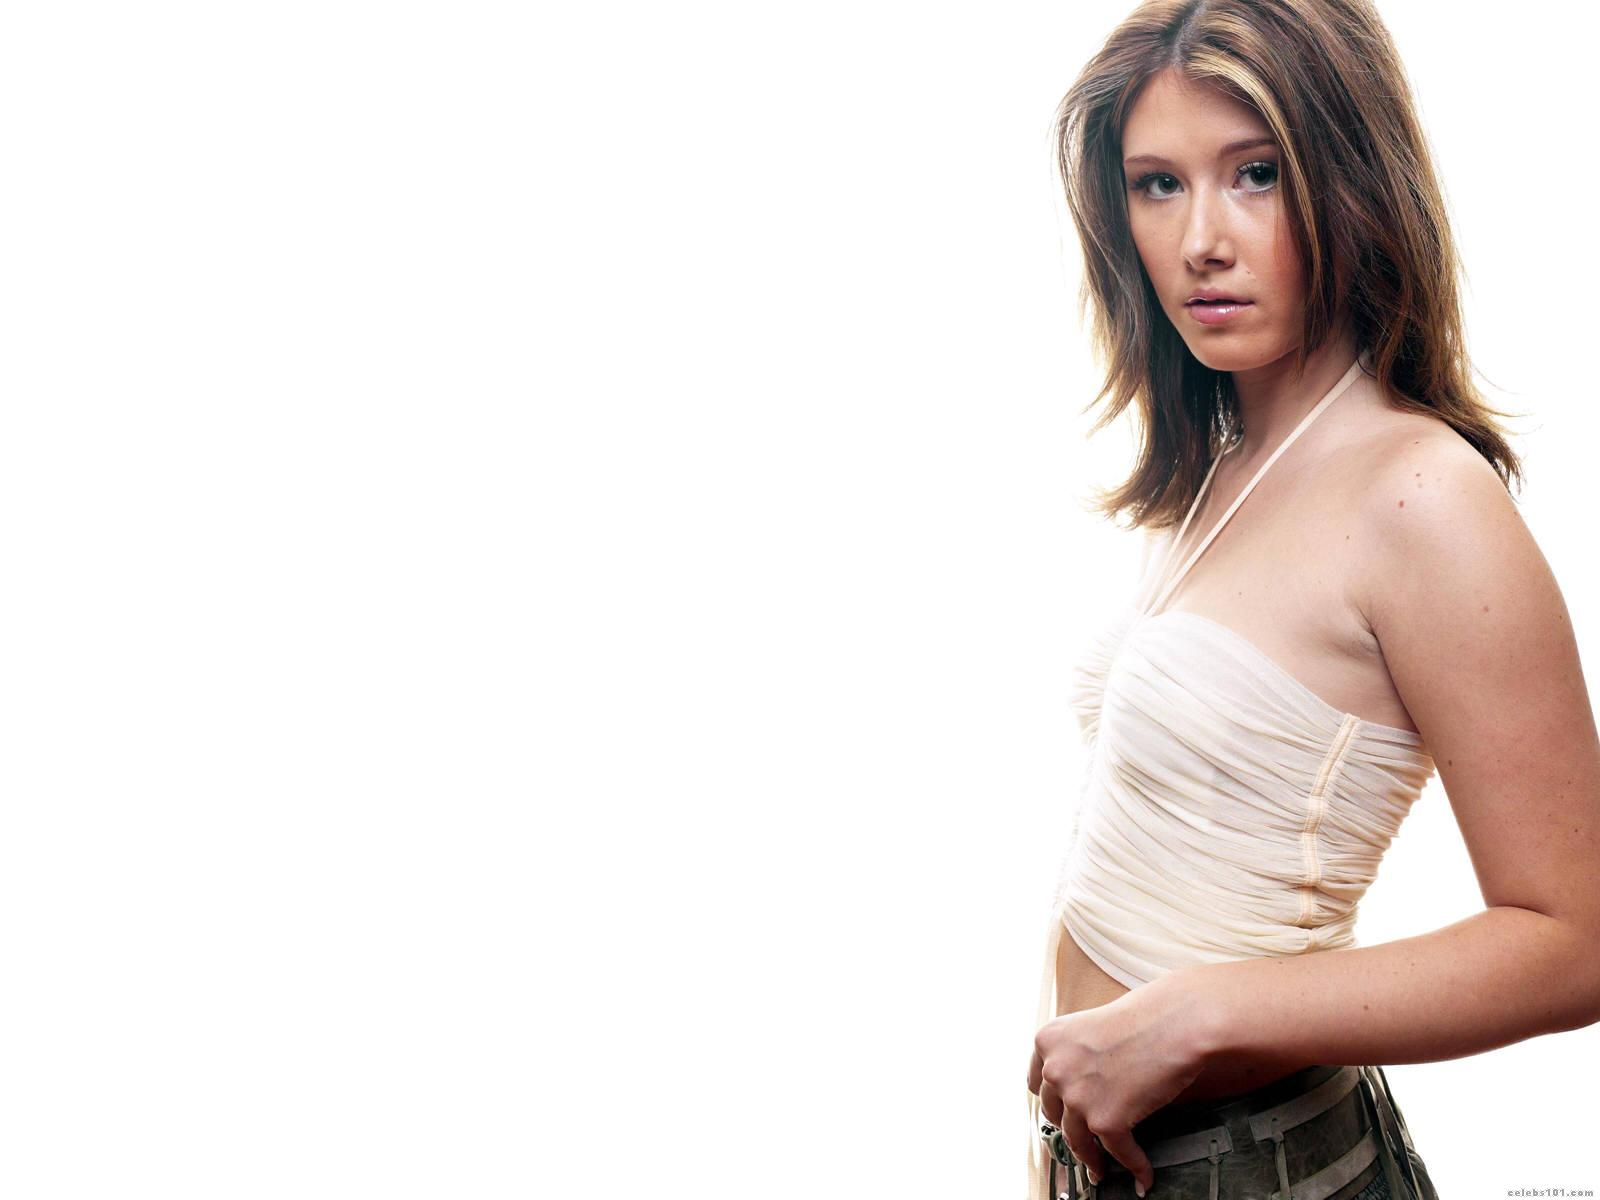 Jewel staite high quality wallpaper size 1600x1200 of for Jewel wallpaper